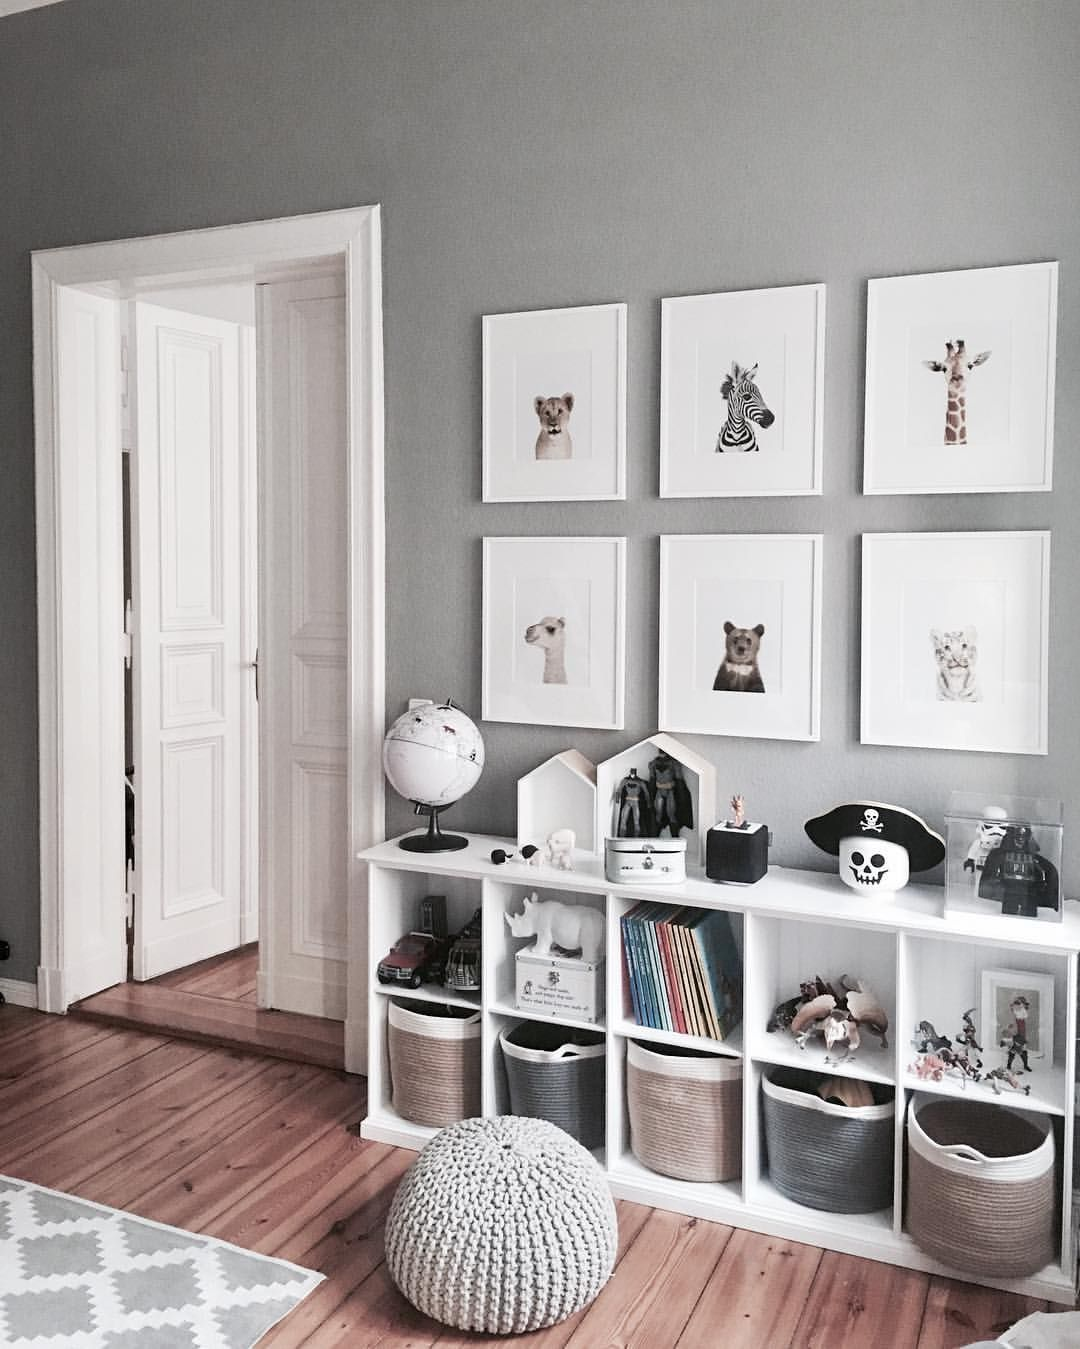 Kids Room Decor Ideas Pinterest: Insta And Pinterest @amymckeown5